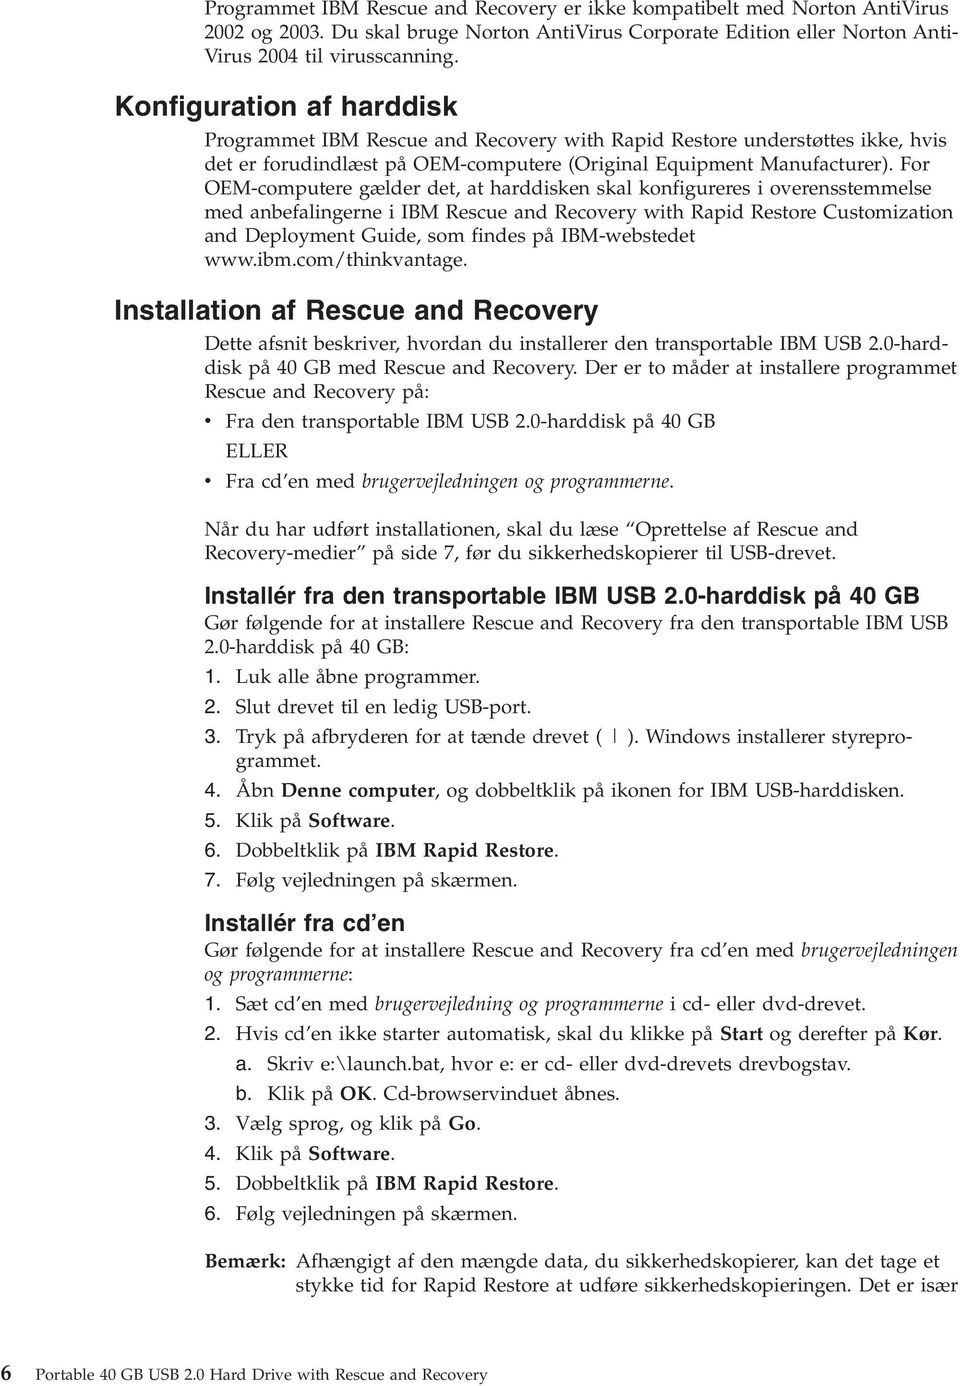 For OEM-computere gælder det, at harddisken skal konfigureres i oerensstemmelse med anbefalingerne i IBM Rescue and Recoery with Rapid Restore Customization and Deployment Guide, som findes på